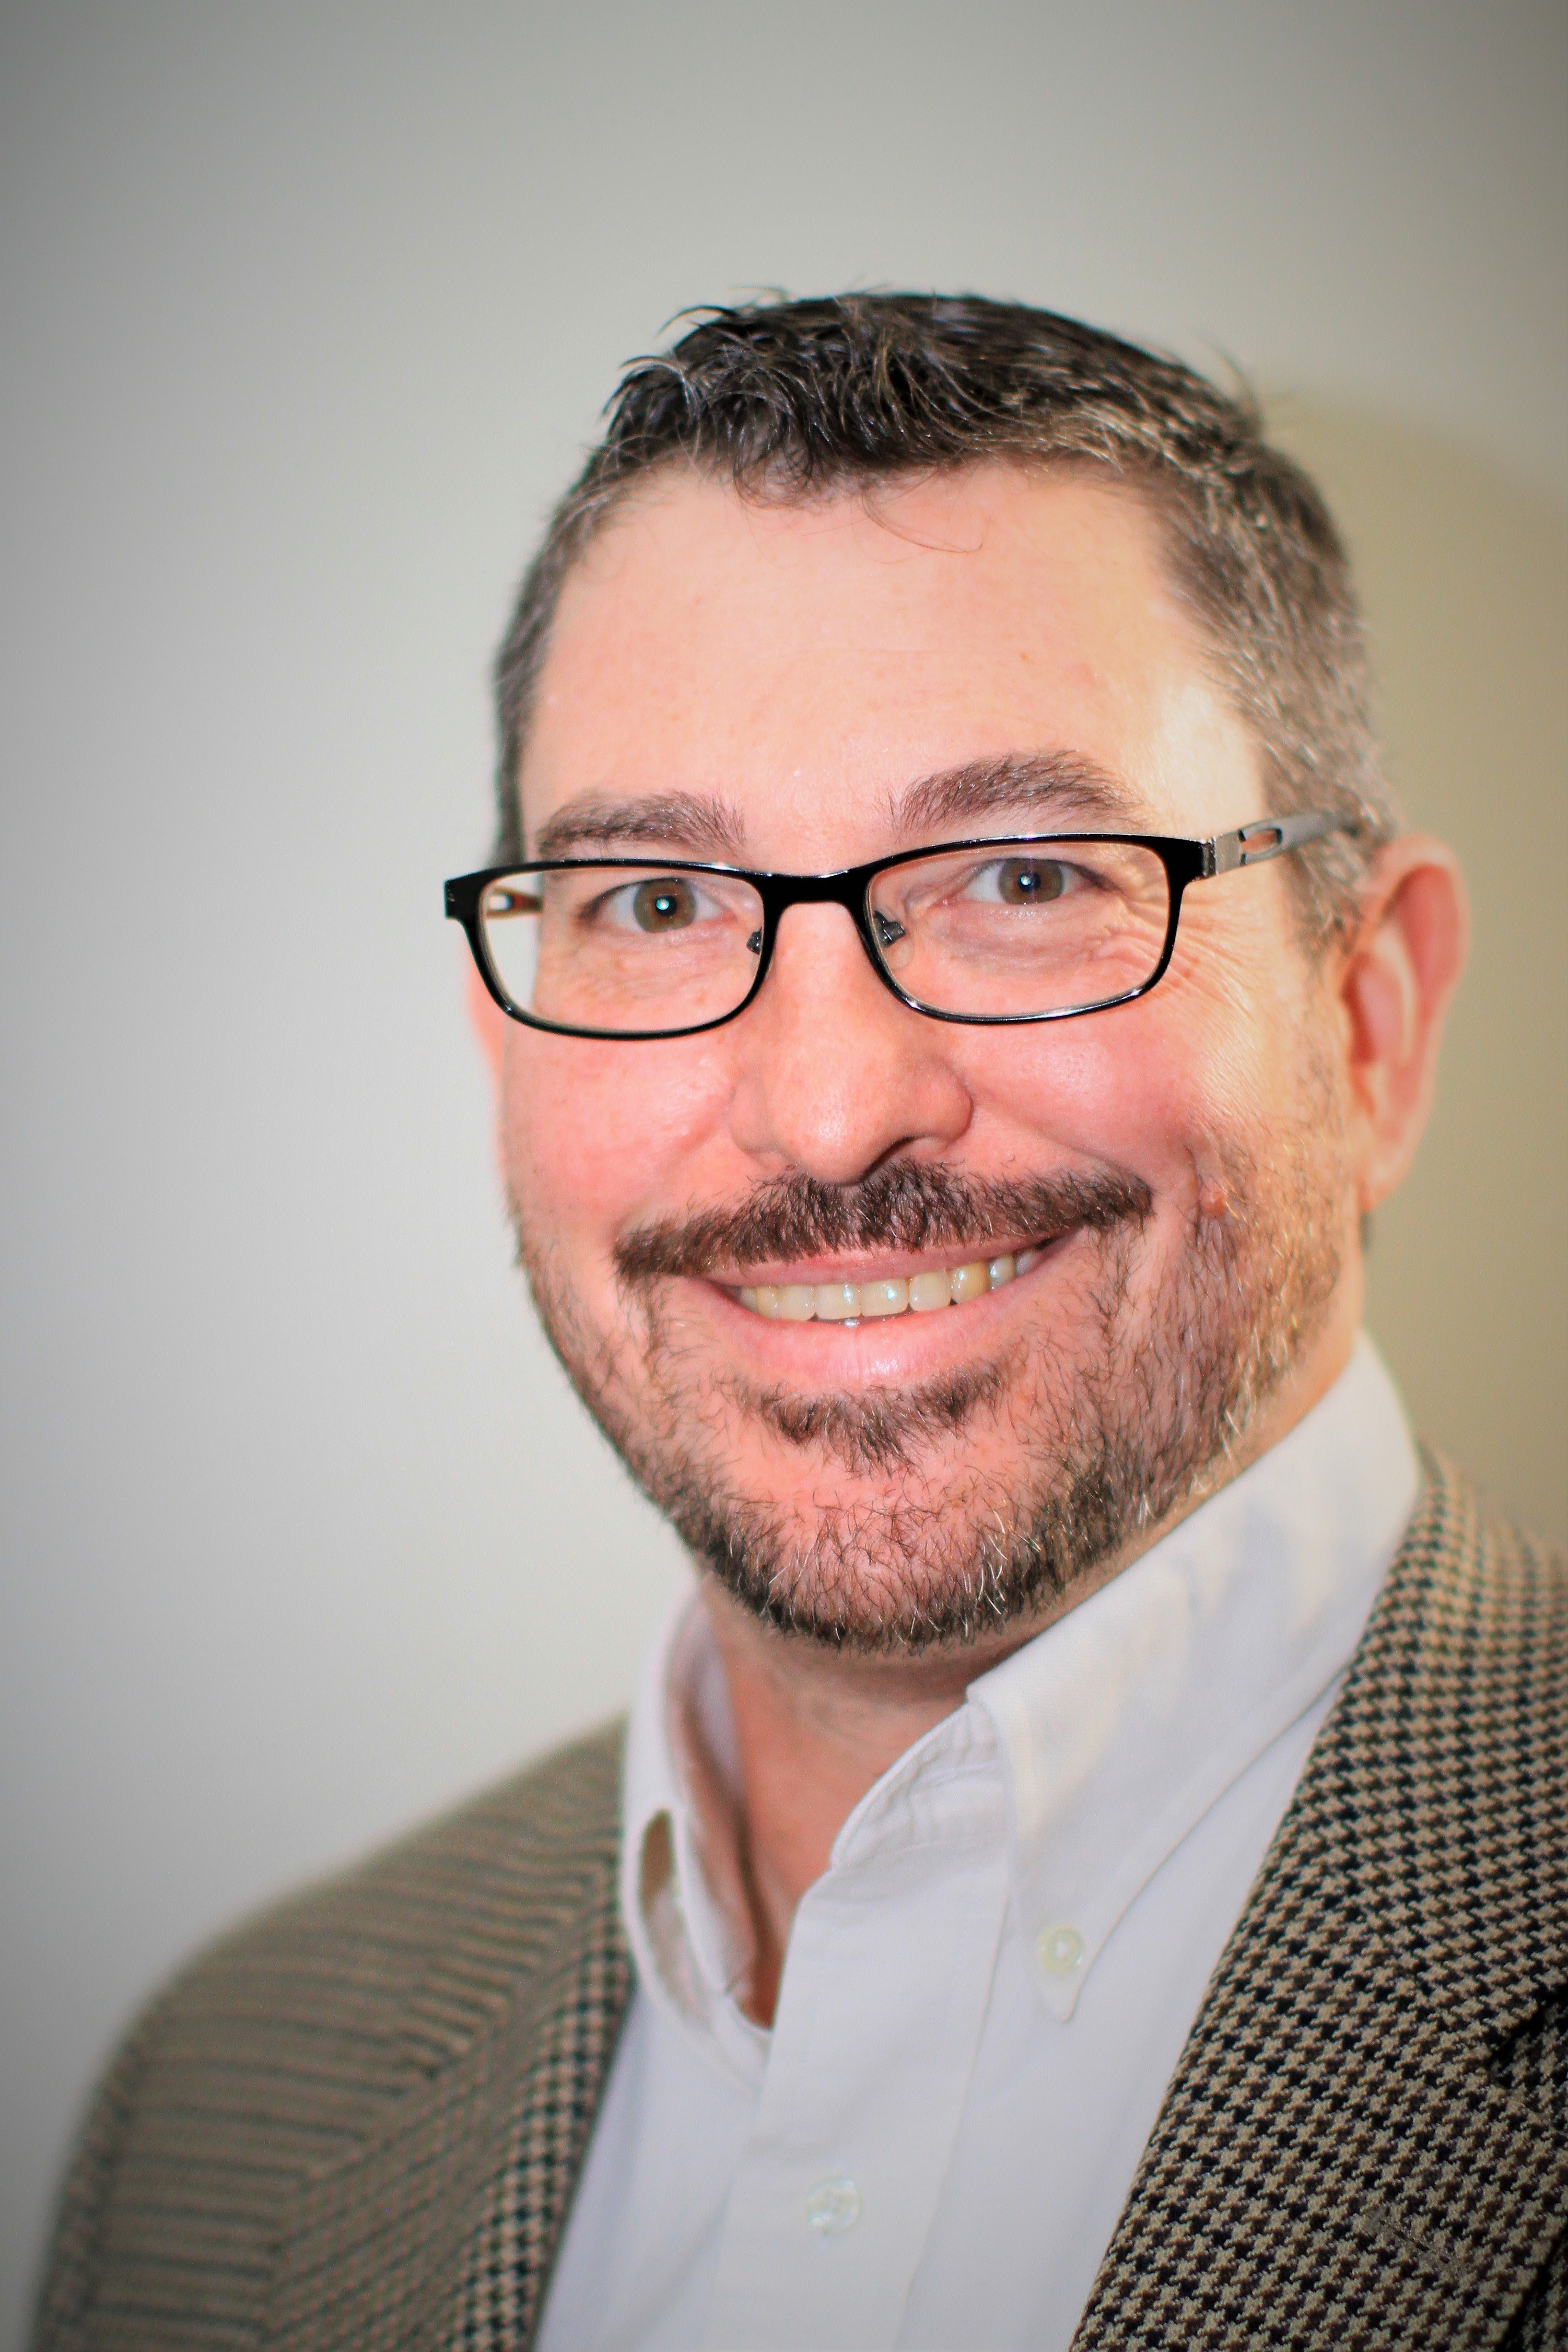 The Beacon Group Welcomes Thomas C. Stuart as Director in the Healthcare Practice